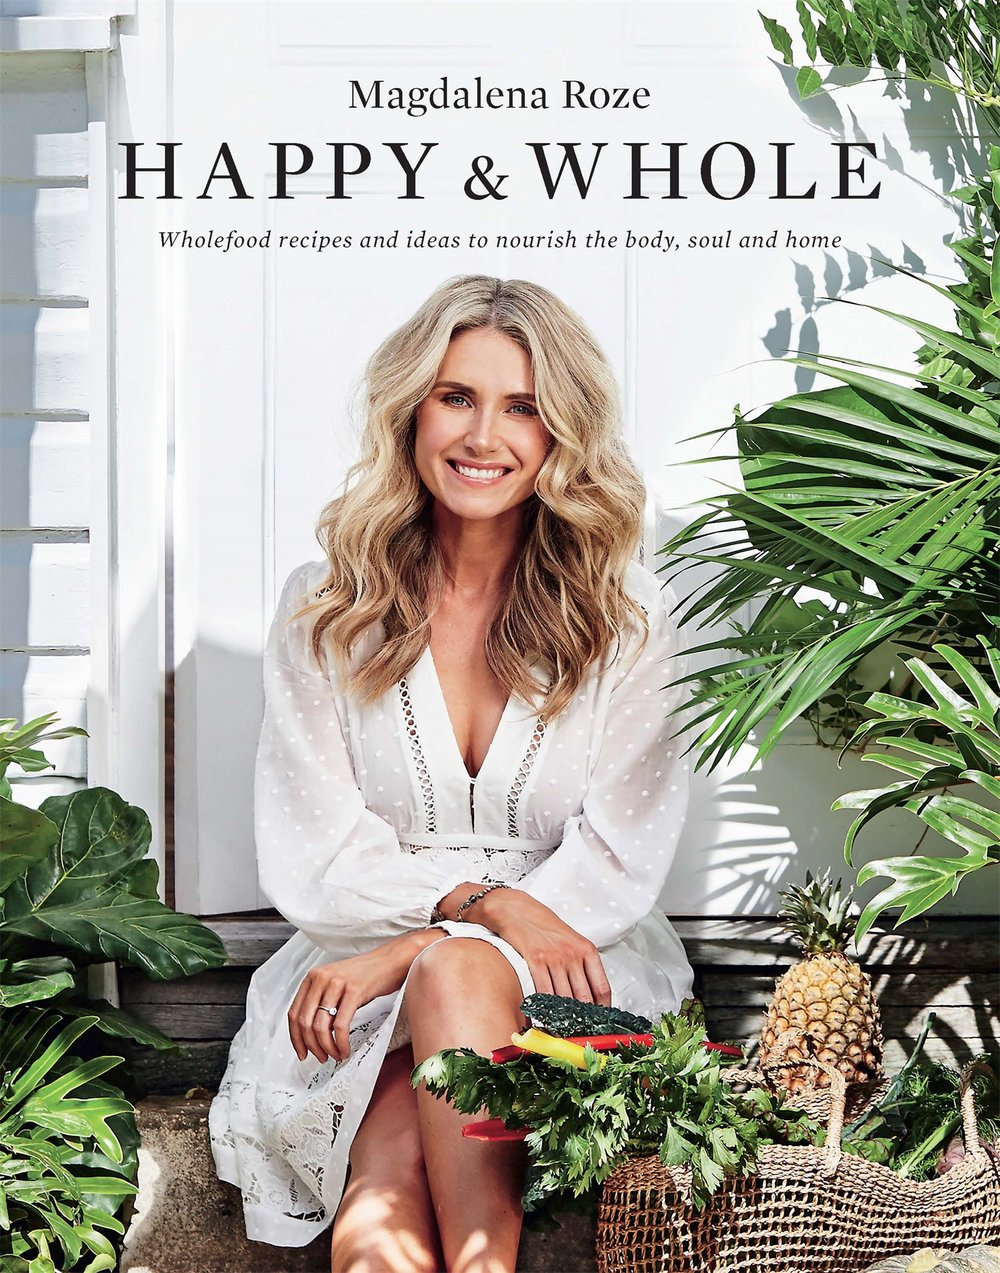 Magdalena Roze's new cook book, Happy and Whole.Image of book cover courtesy of Plum, photography by Rob Palmer.